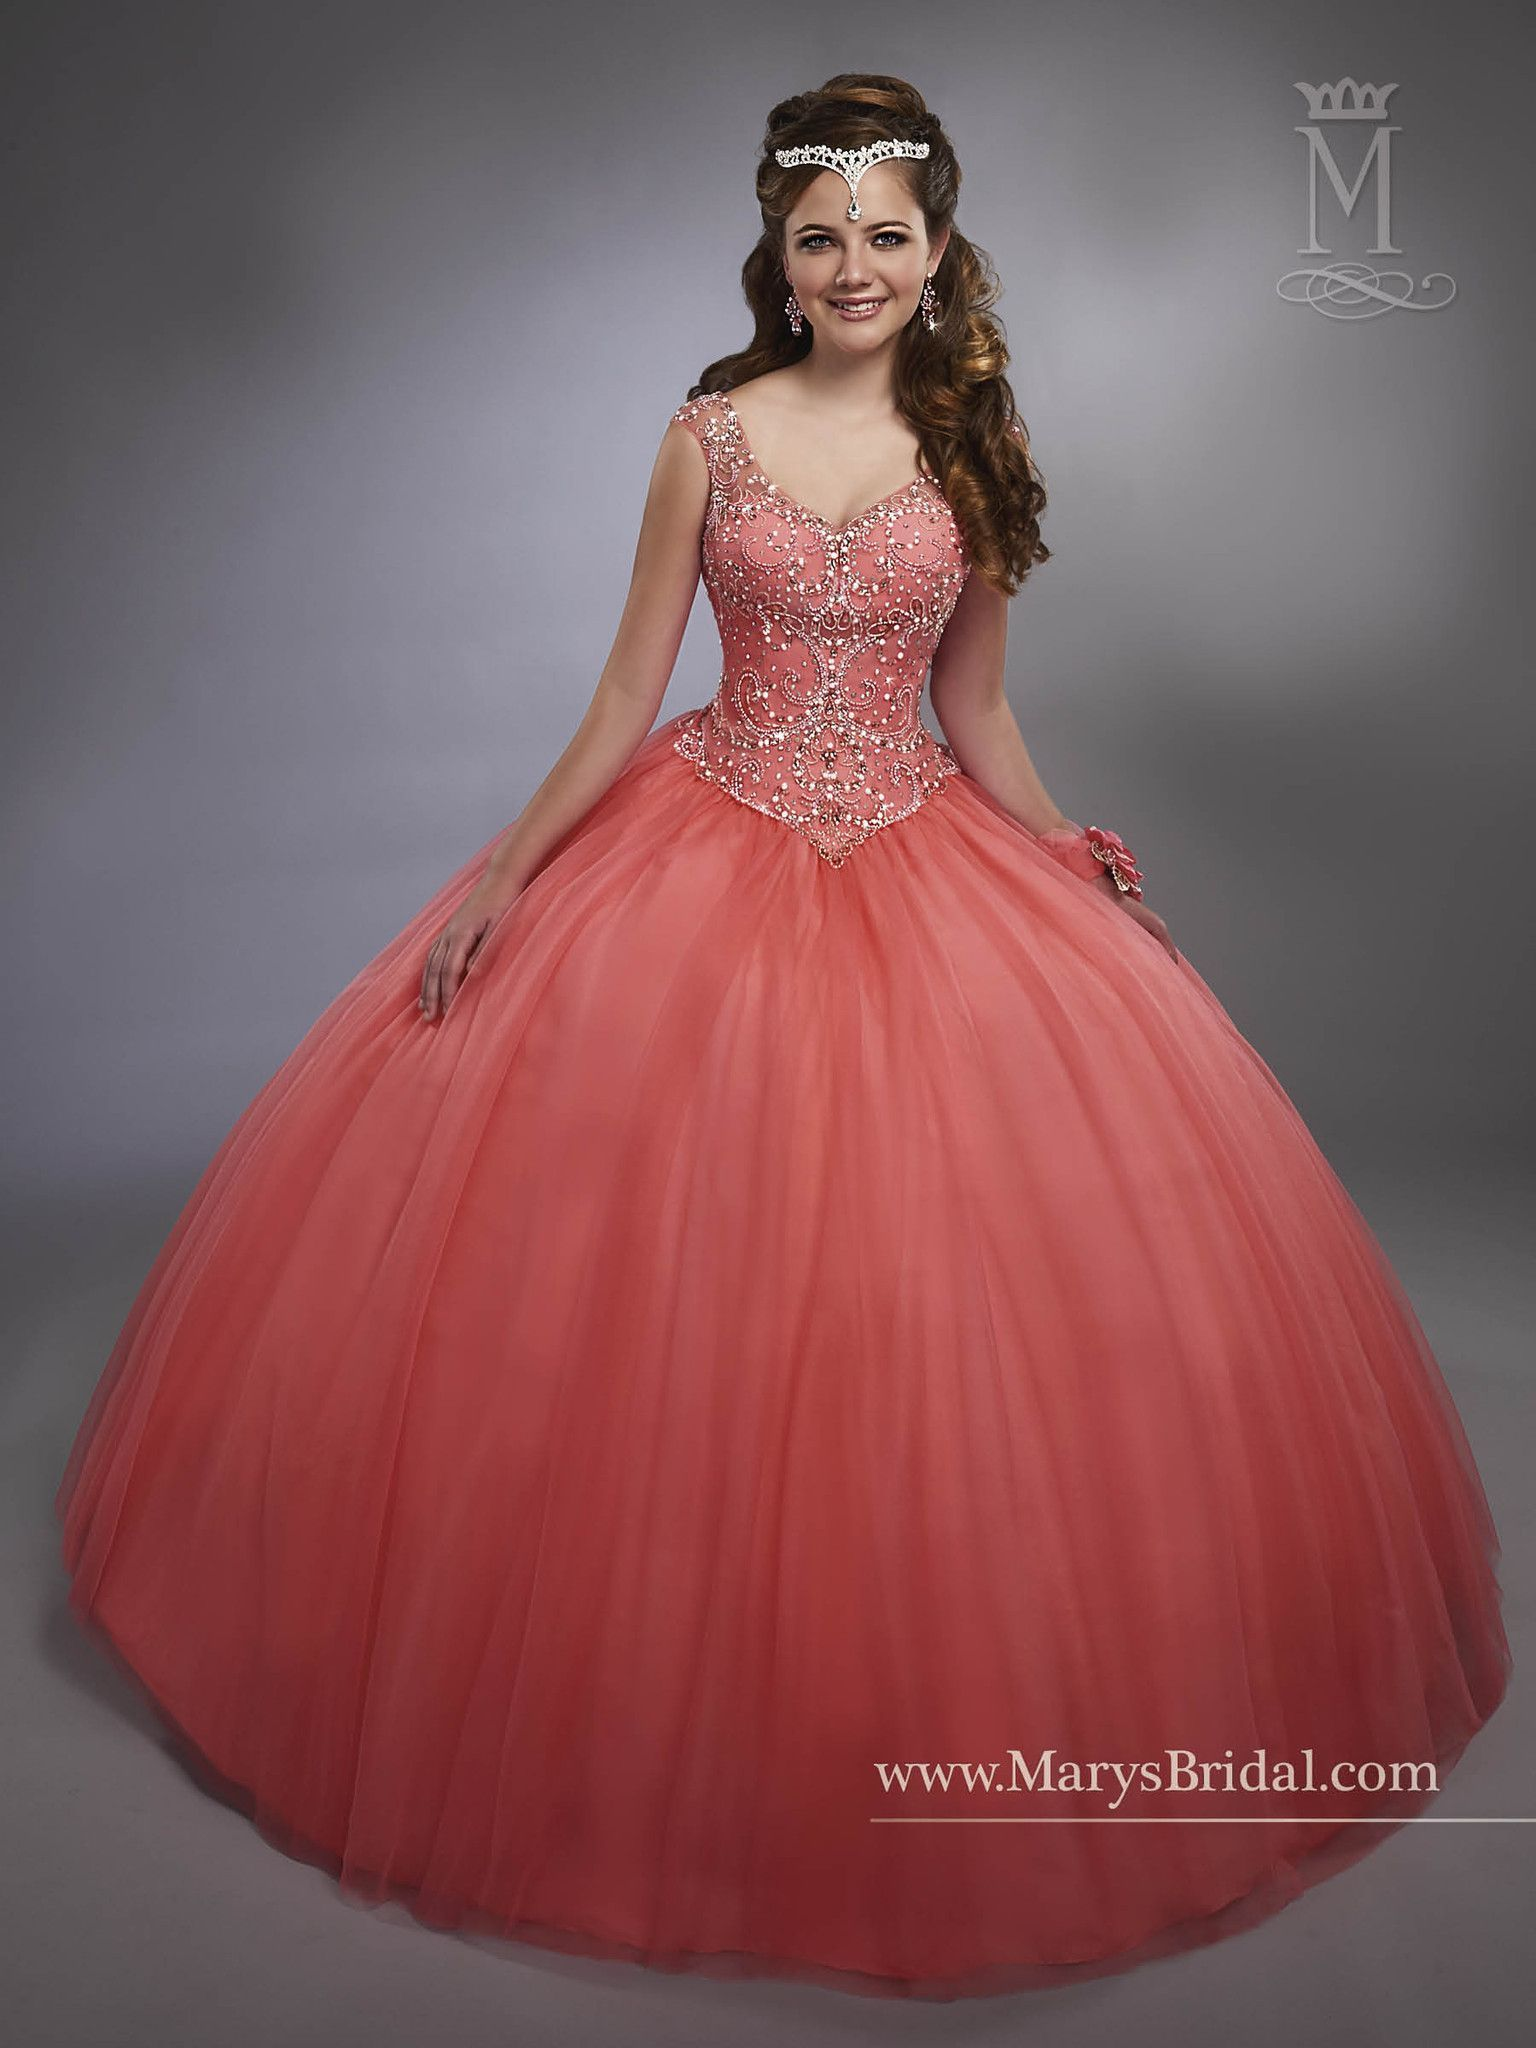 Mary\'s Bridal Beloving Collection Quinceanera Dress Style 4790 ...